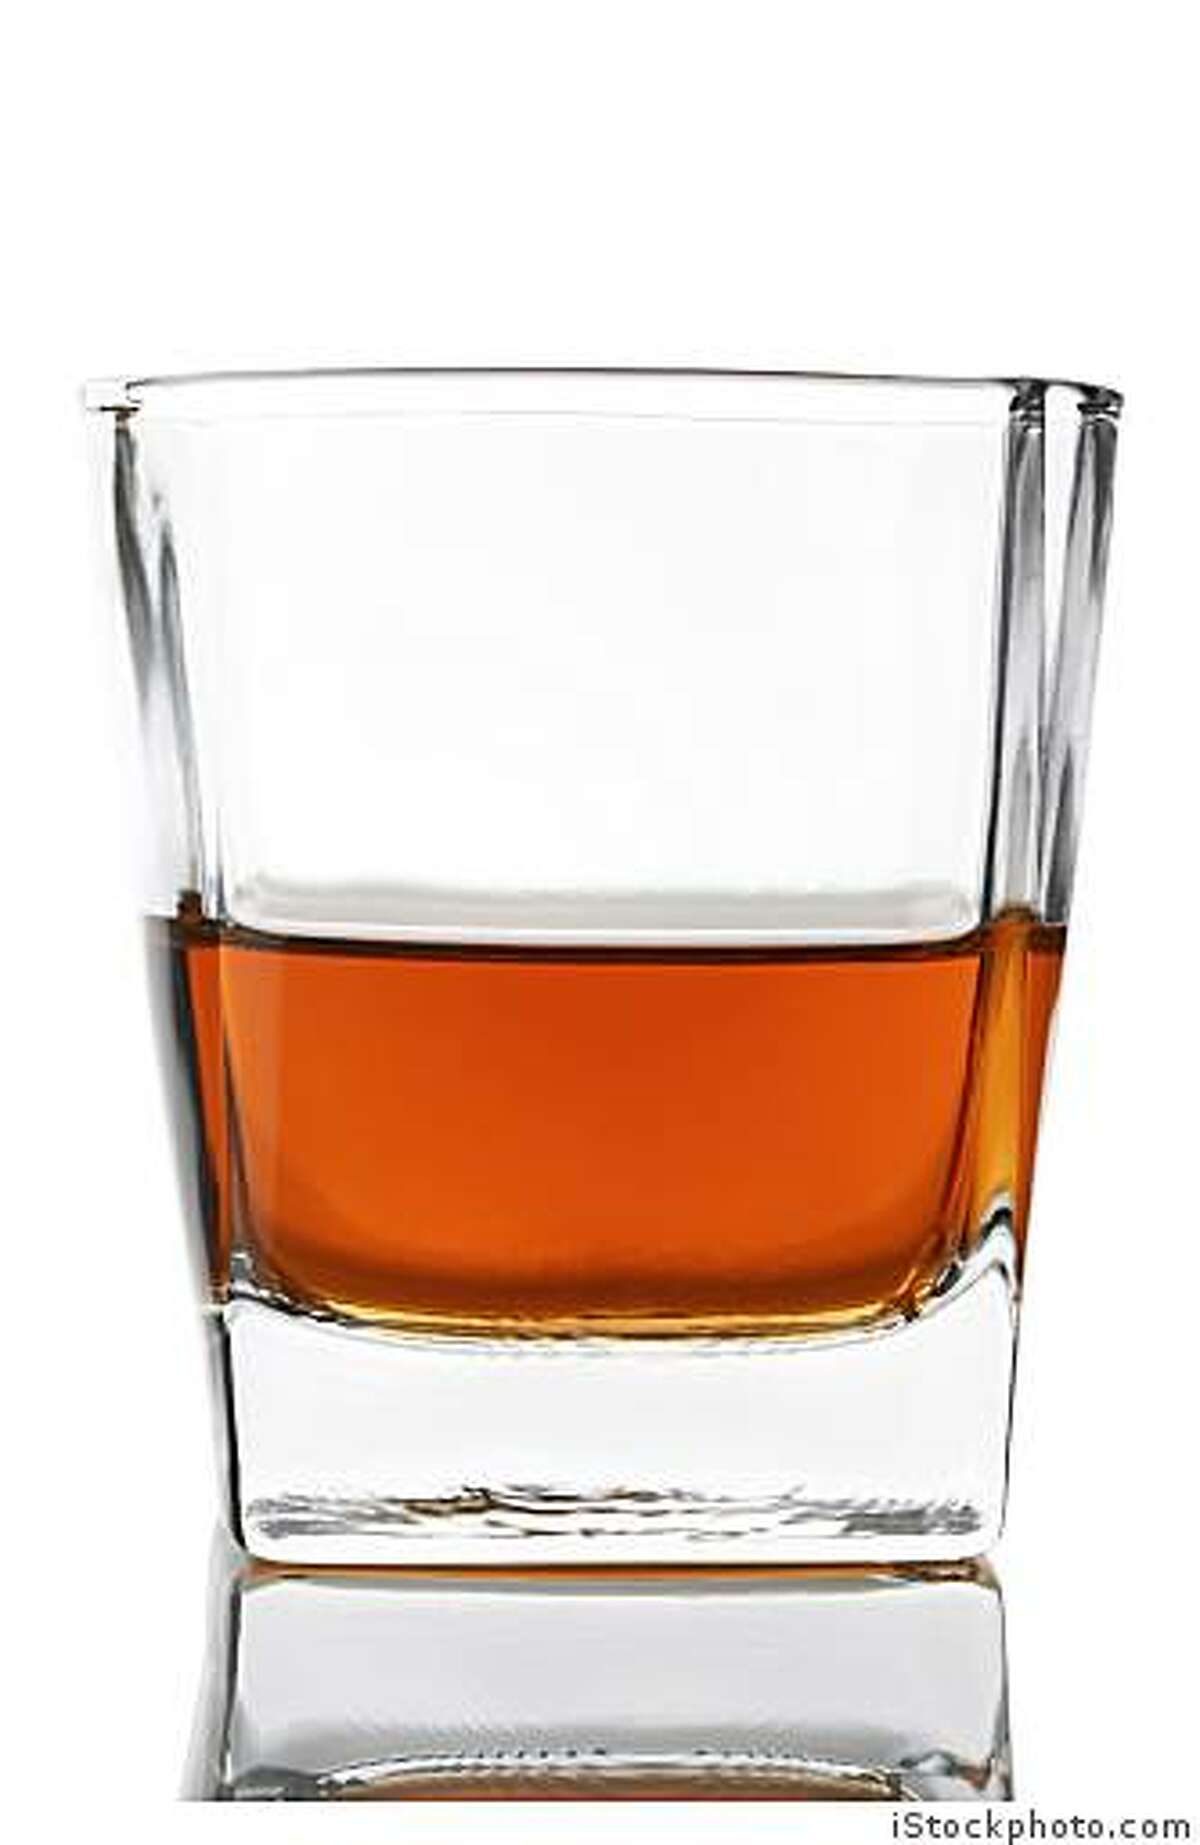 A glass of whisky. iStockphoto.com